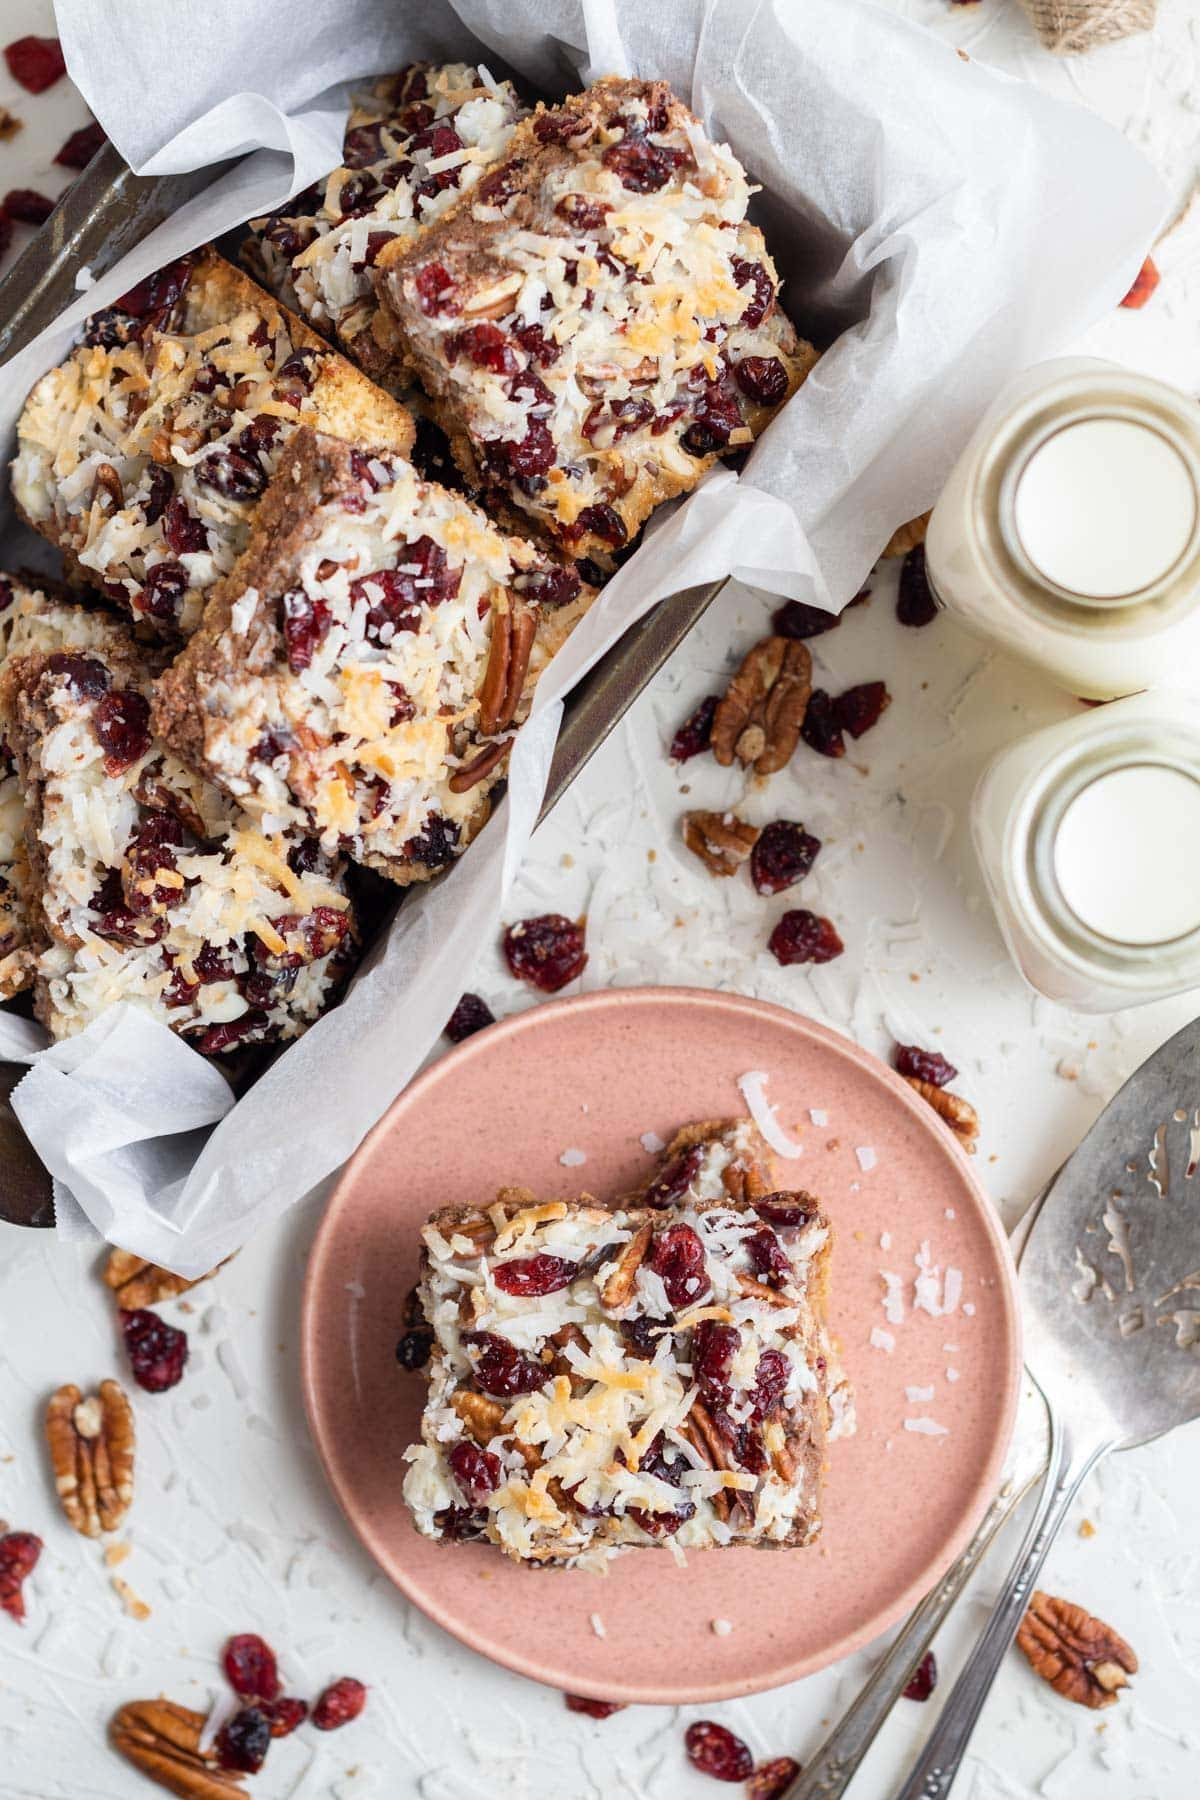 magic bars in a pan, one on a pink plate, 2 jars of milk, scattered chocolate chips, a silver serving spoon